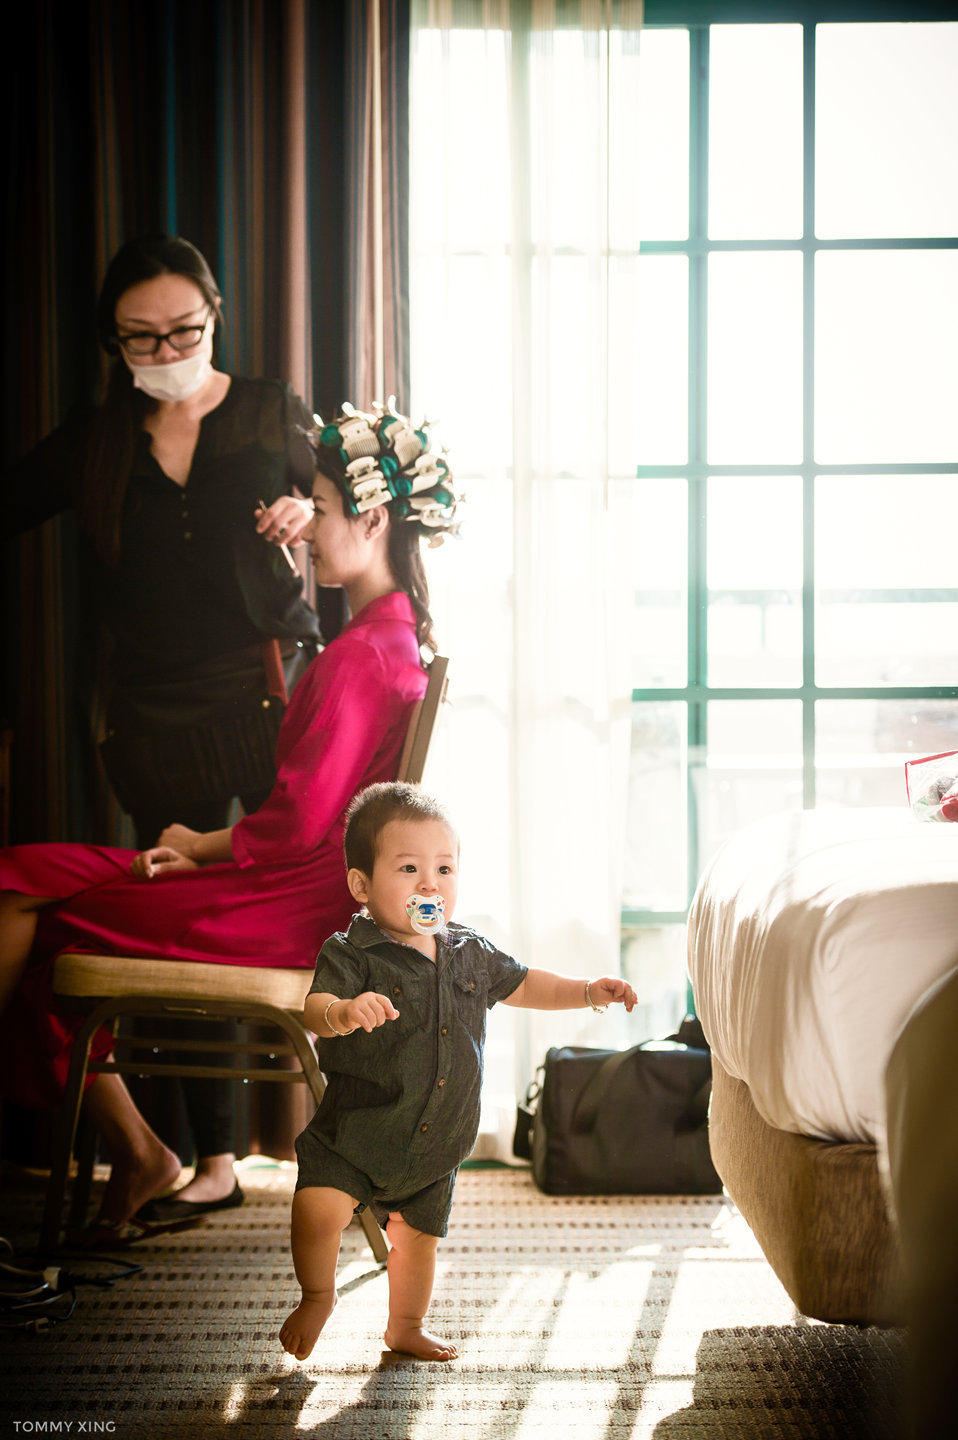 Wayfarers chapel Wedding Photography Ranho Palos Verdes Tommy Xing Photography 洛杉矶玻璃教堂婚礼婚纱照摄影师009.jpg